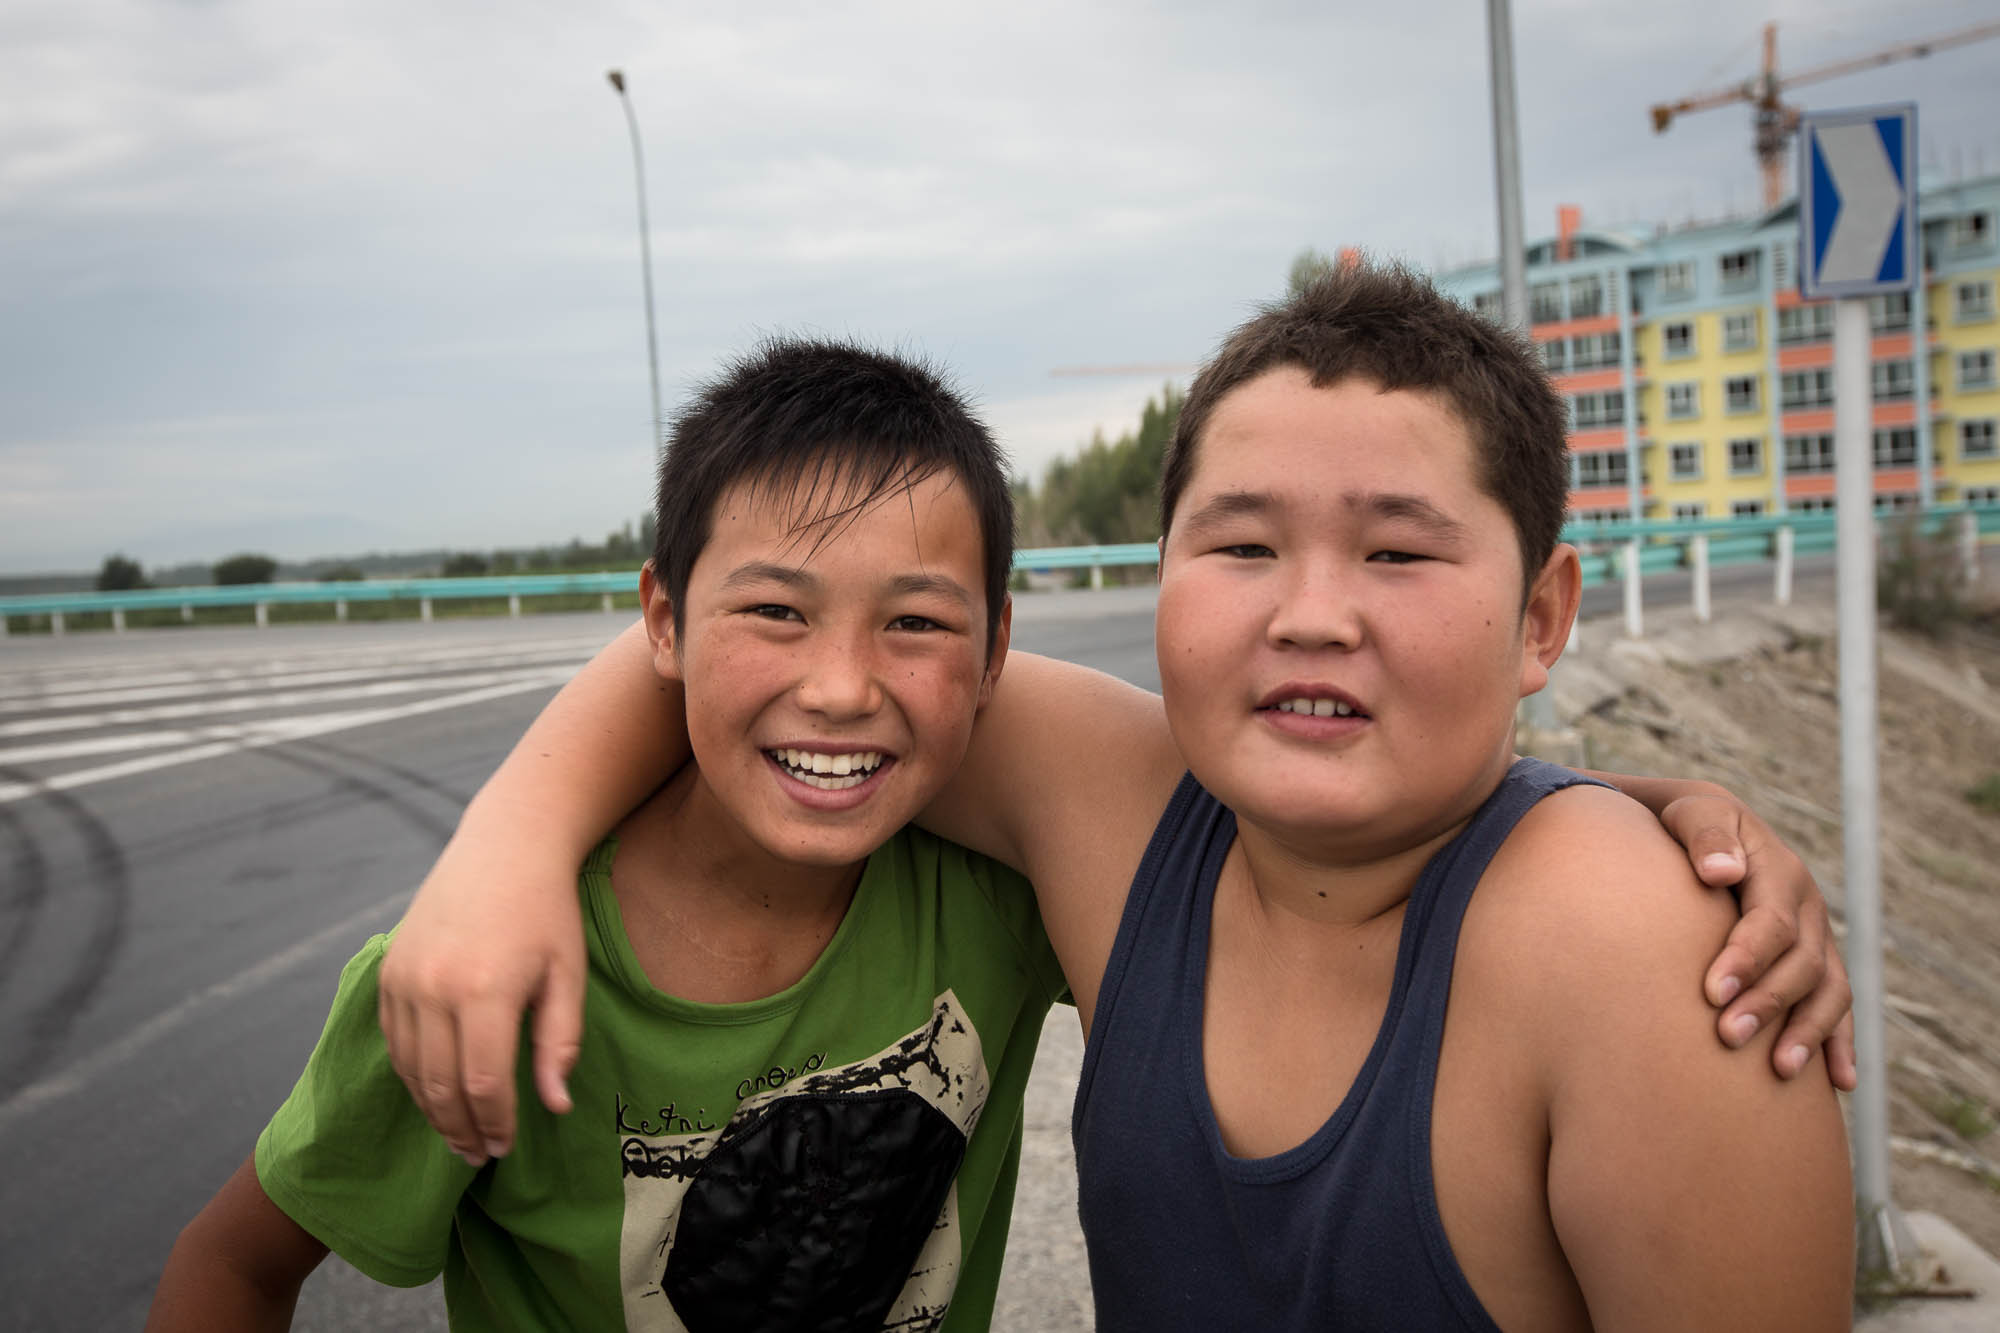 These two Kazakh kids delighted me with a friendly chat